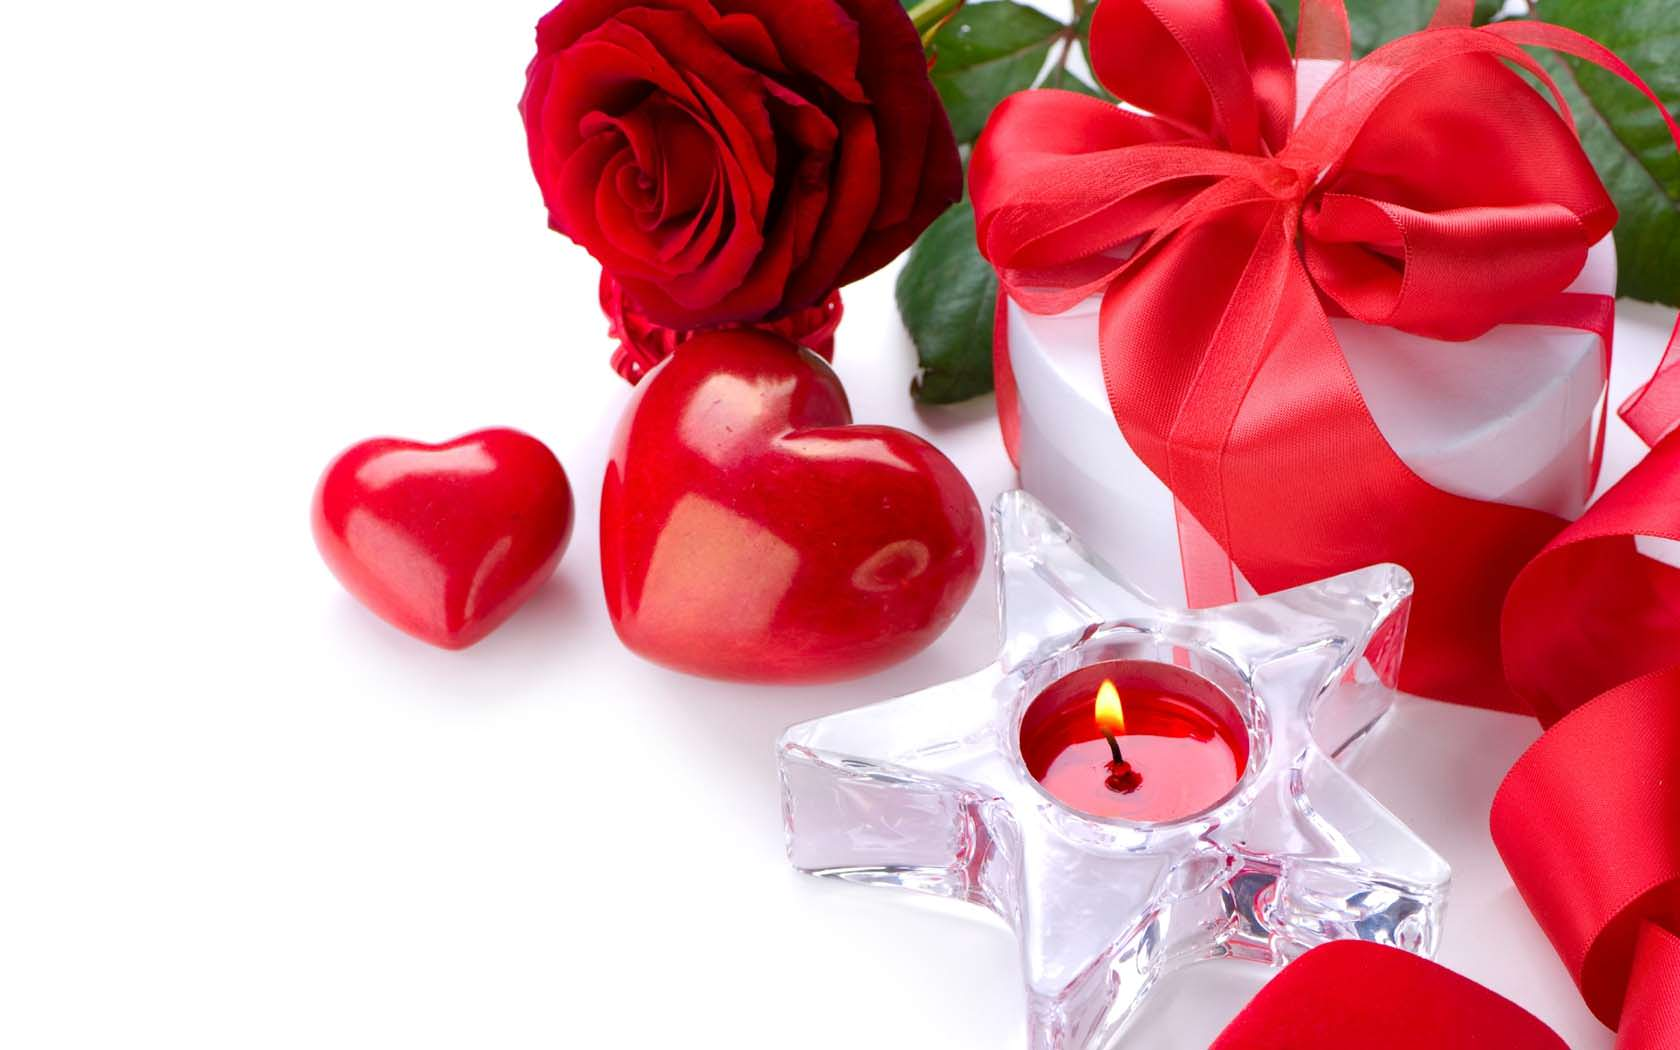 Love Rose Flower Ribbon Gift Candle Heart Romance 1680x1050 - Cool ...